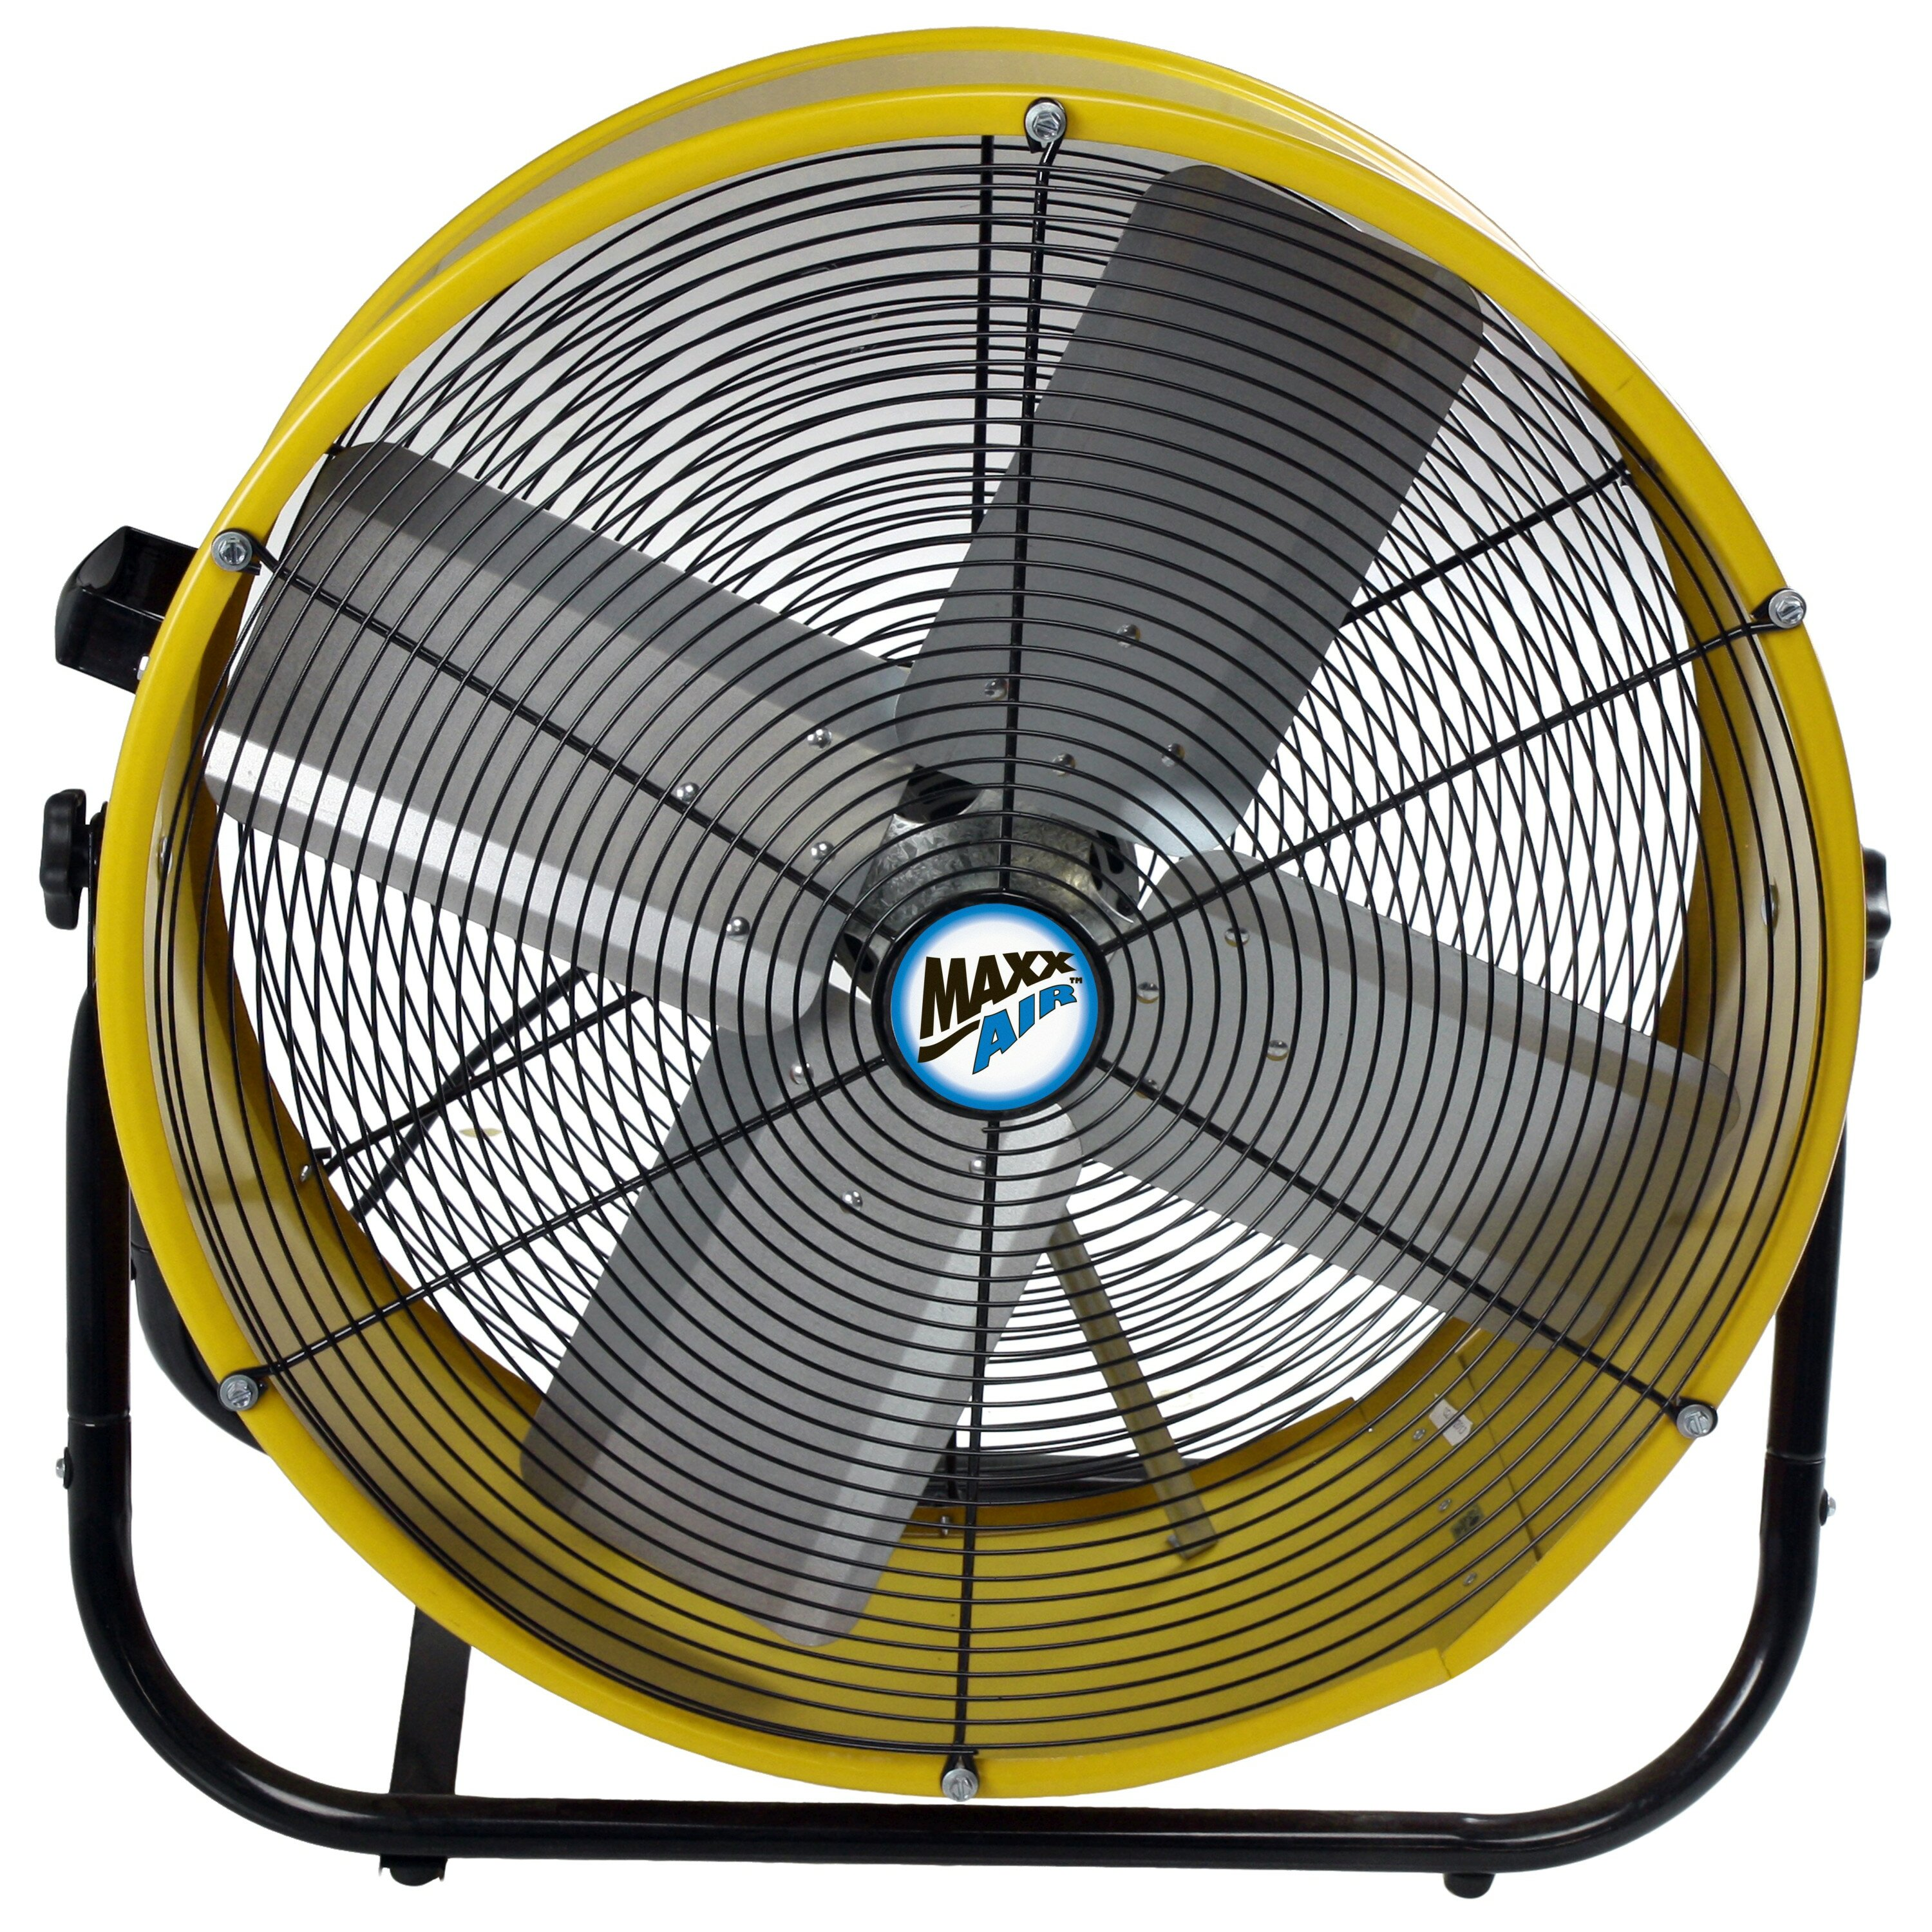 Maxxair High Velocity Floor Fan Amp Reviews Wayfair